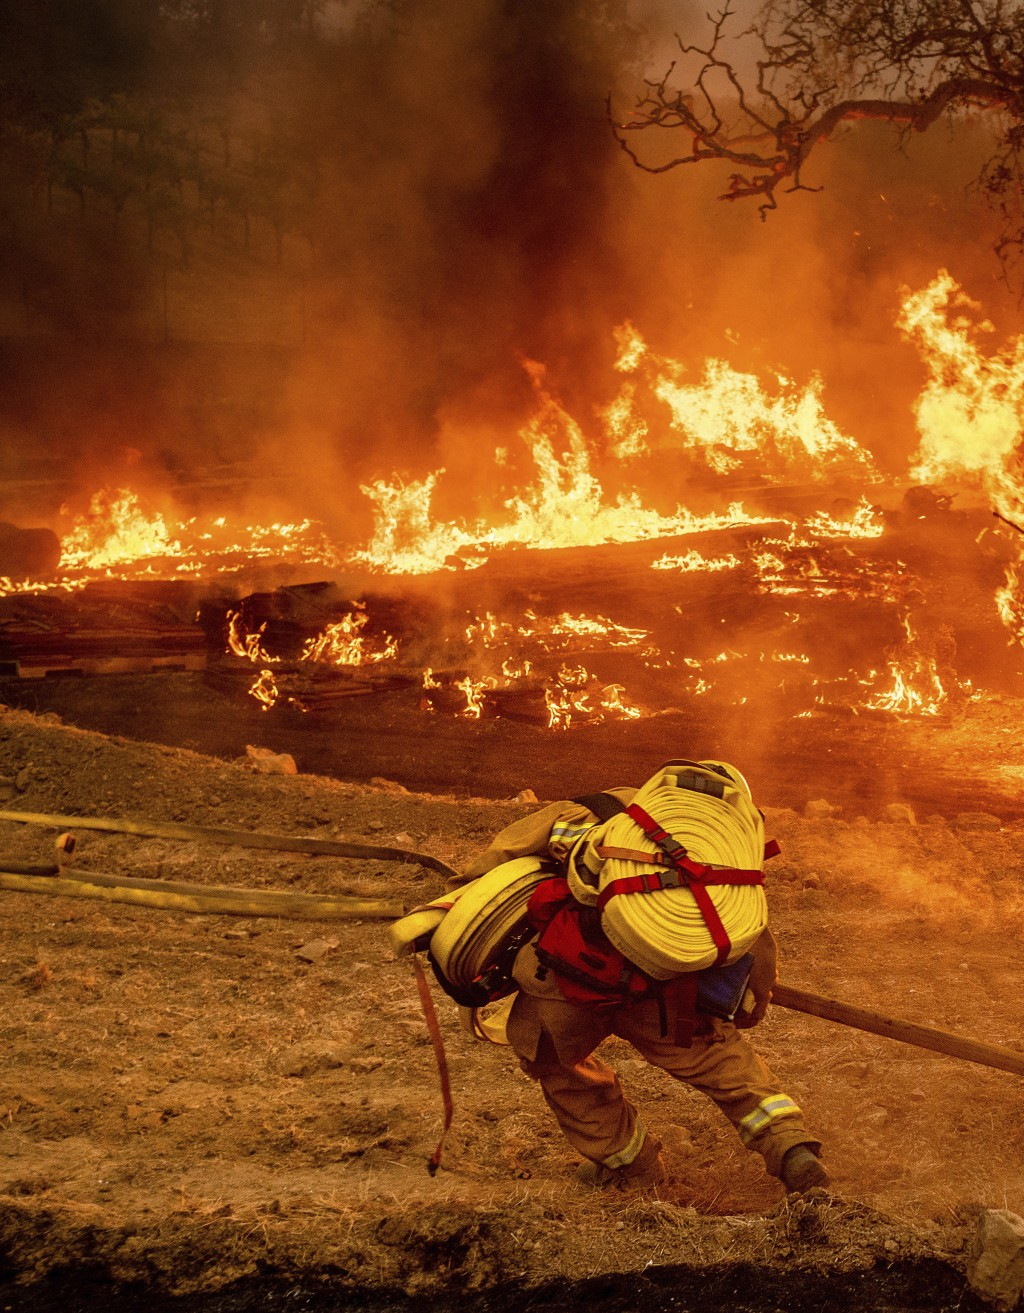 A firefighter carries hose while battling the Glass Fire in a Calistoga, Calif., vineyard Thursday, Oct. 1, 2020. (AP Photo/Noah Berger)